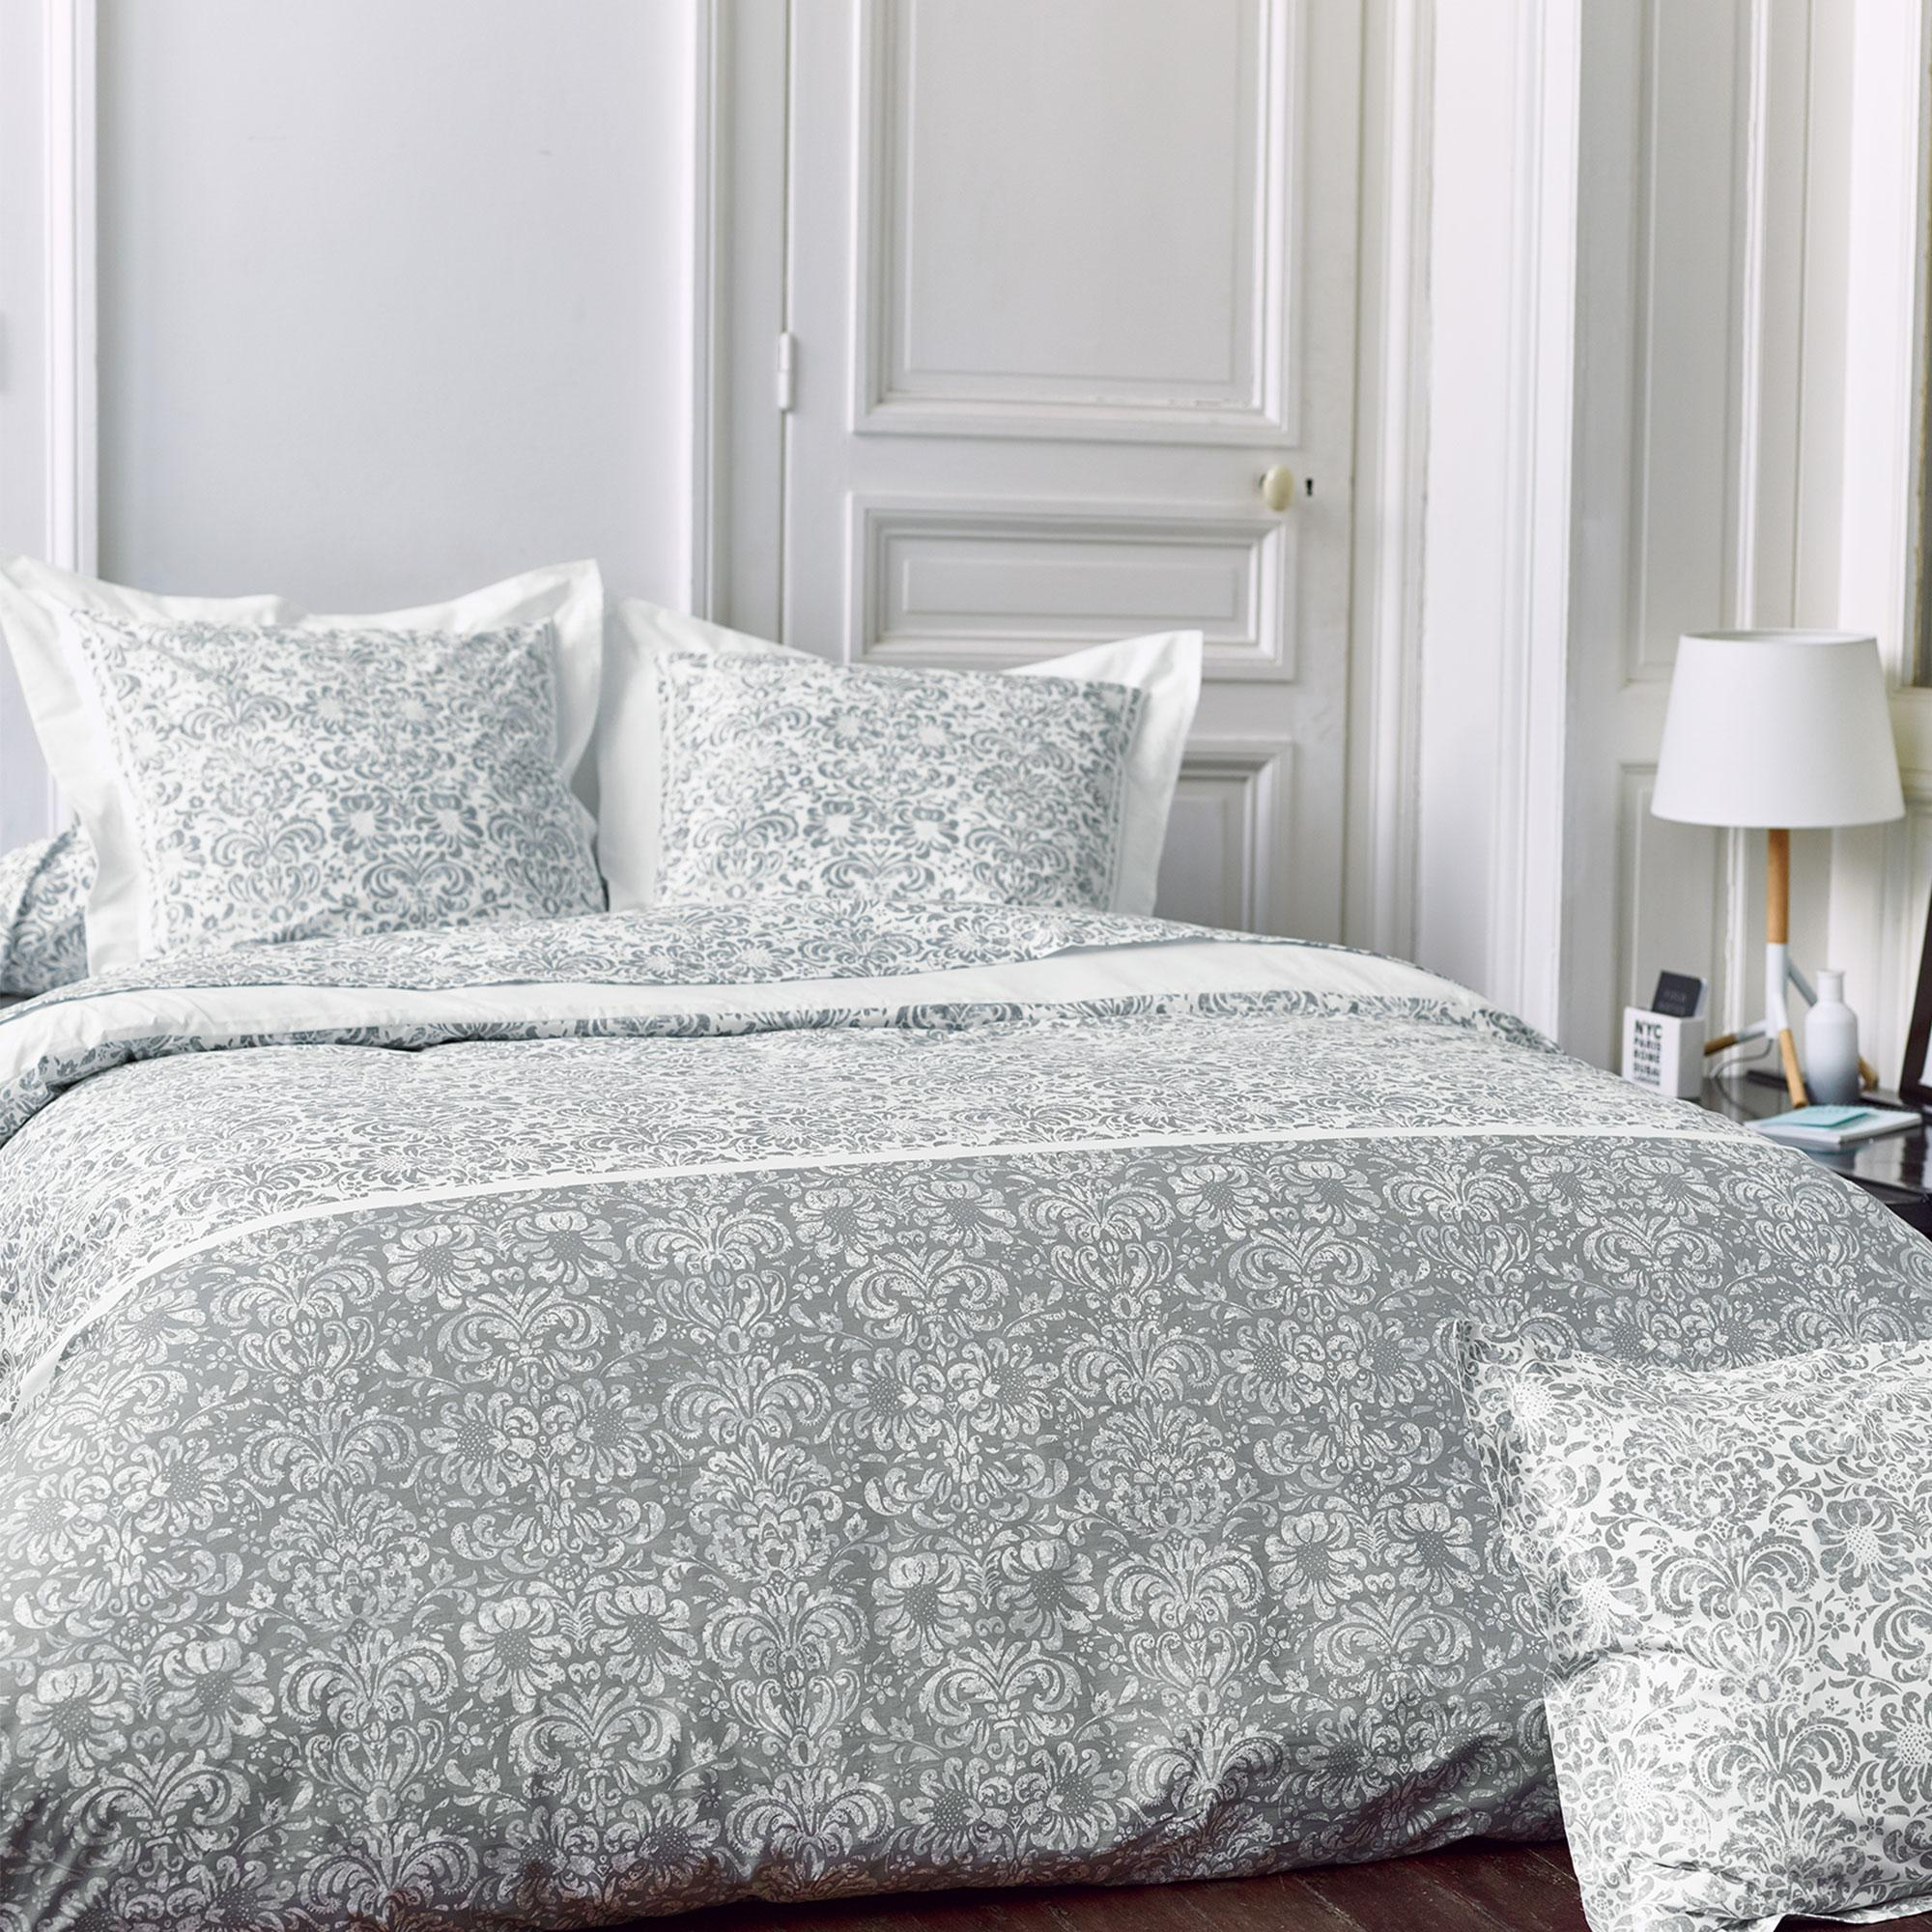 housse de couette 280x240 cm percale pur coton amboise gris linnea linge de maison et. Black Bedroom Furniture Sets. Home Design Ideas